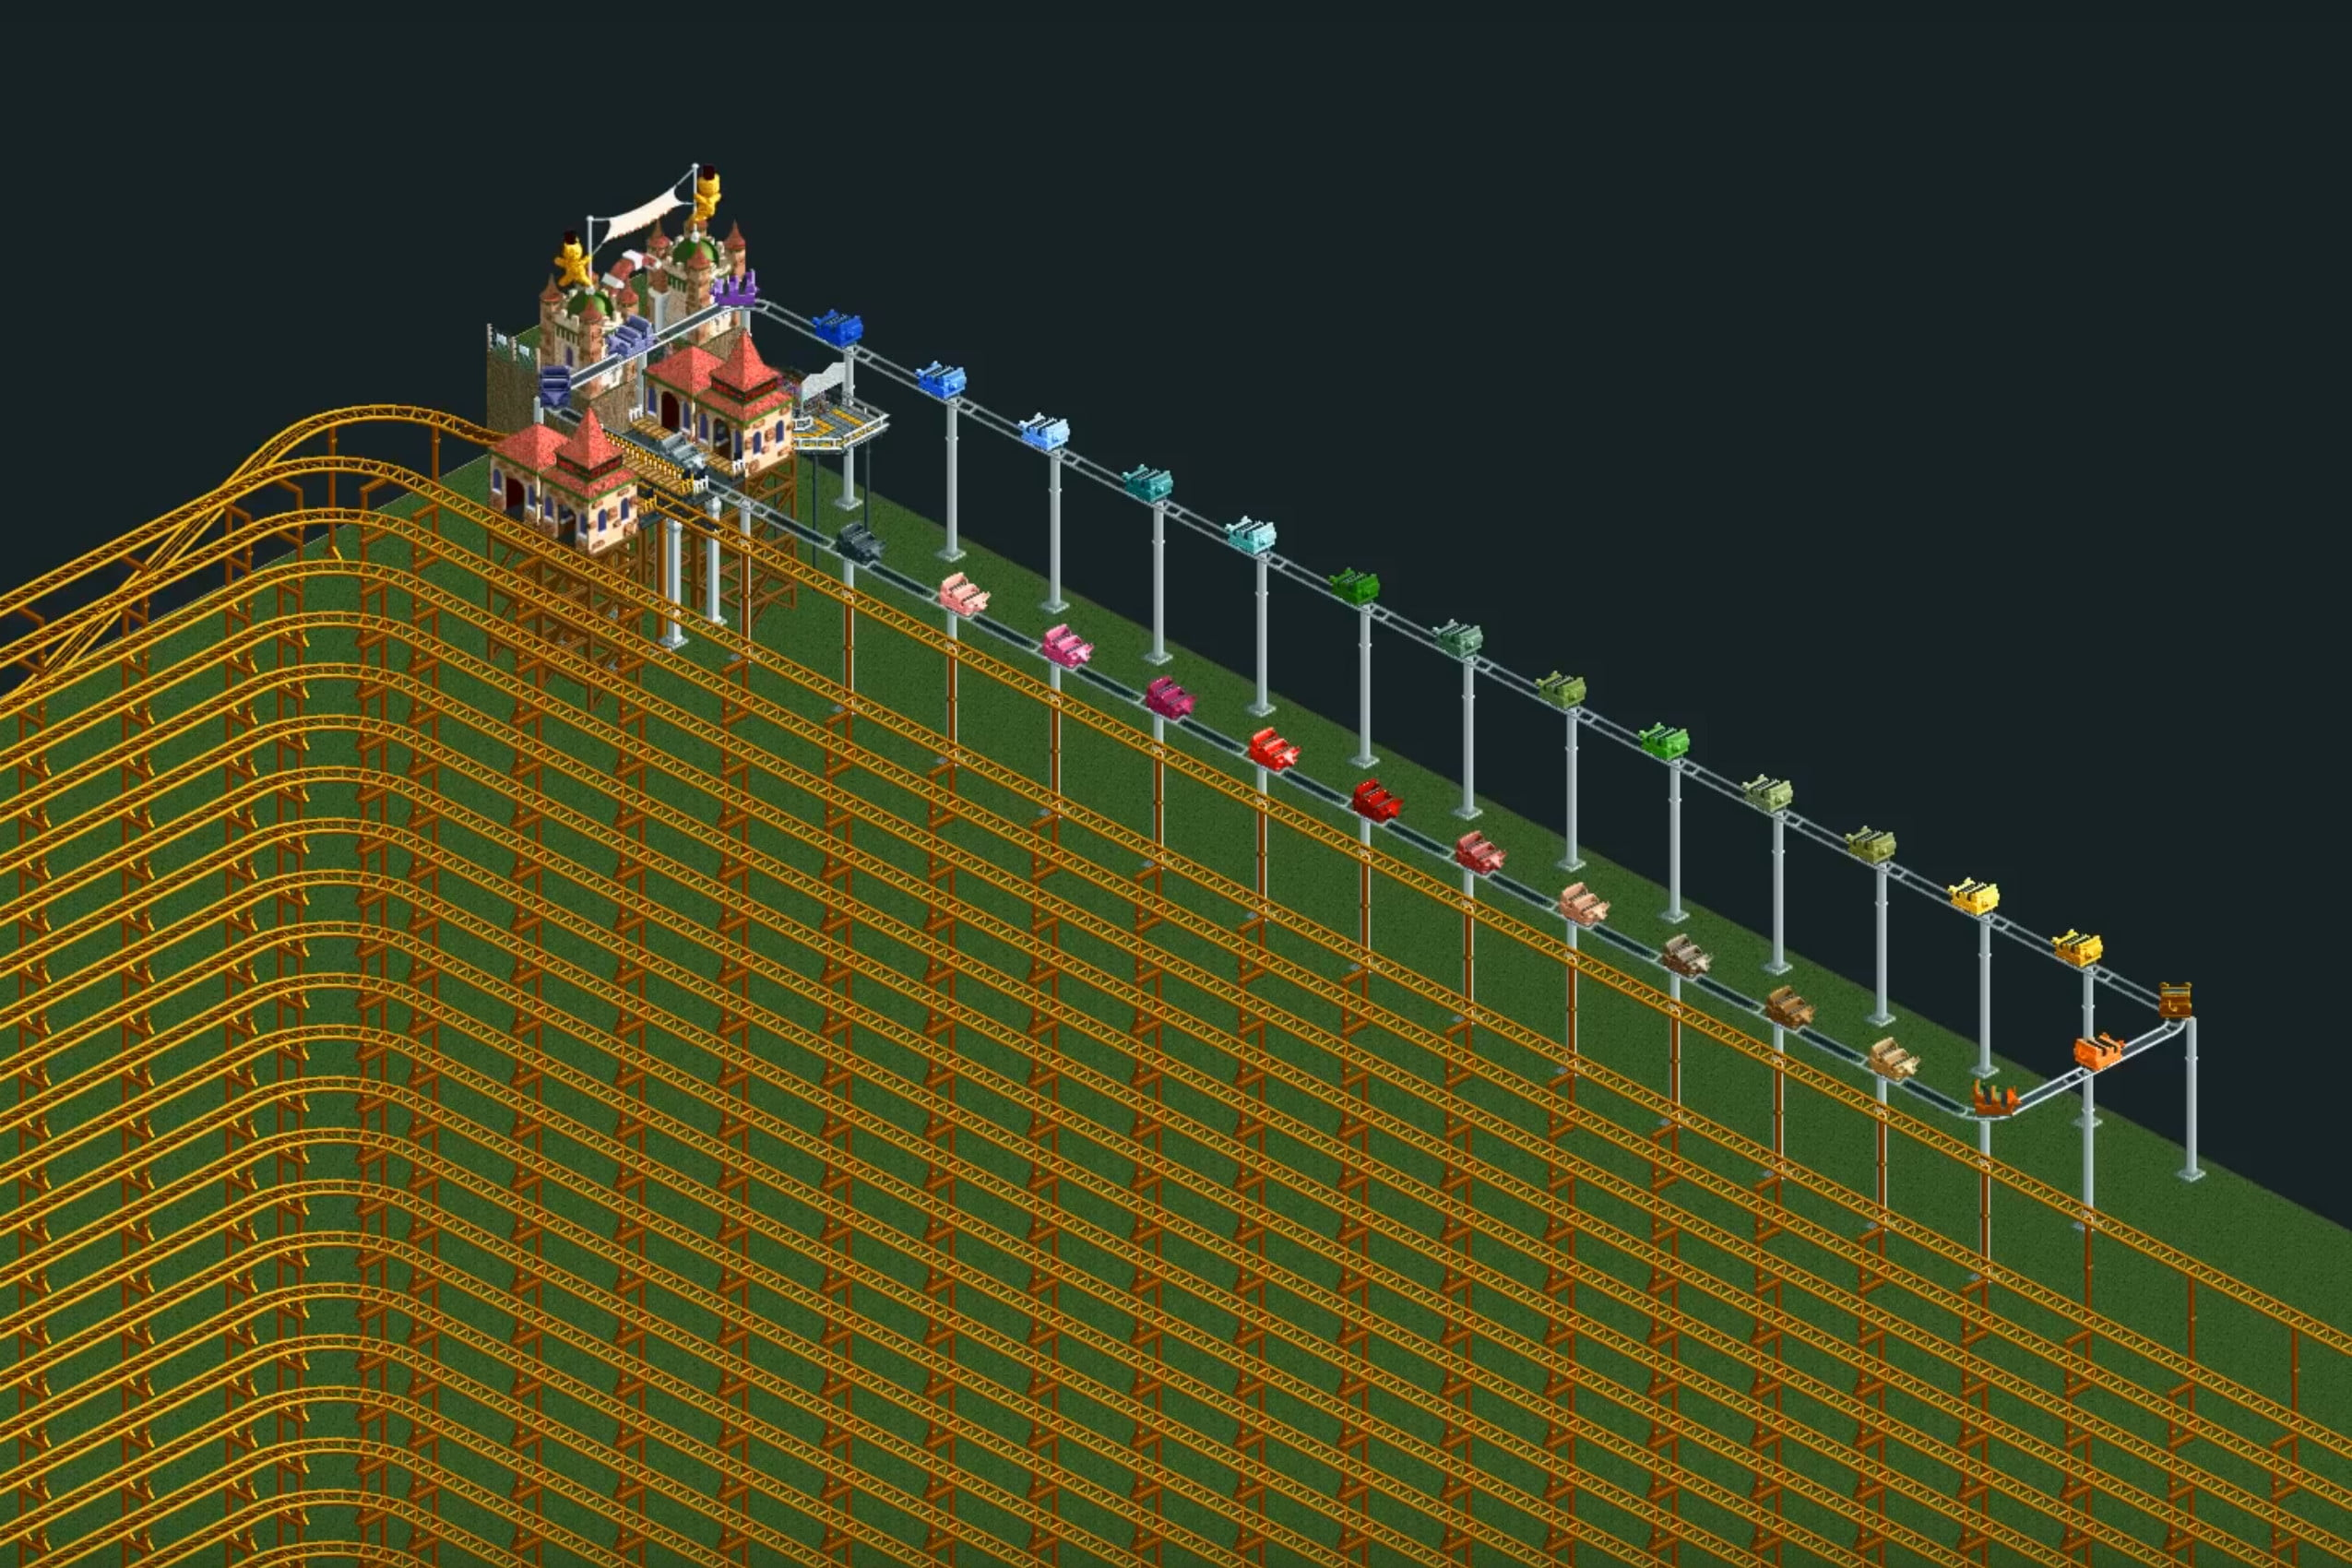 RollerCoaster Tycoon 2 Ride Takes 12 Years to Complete